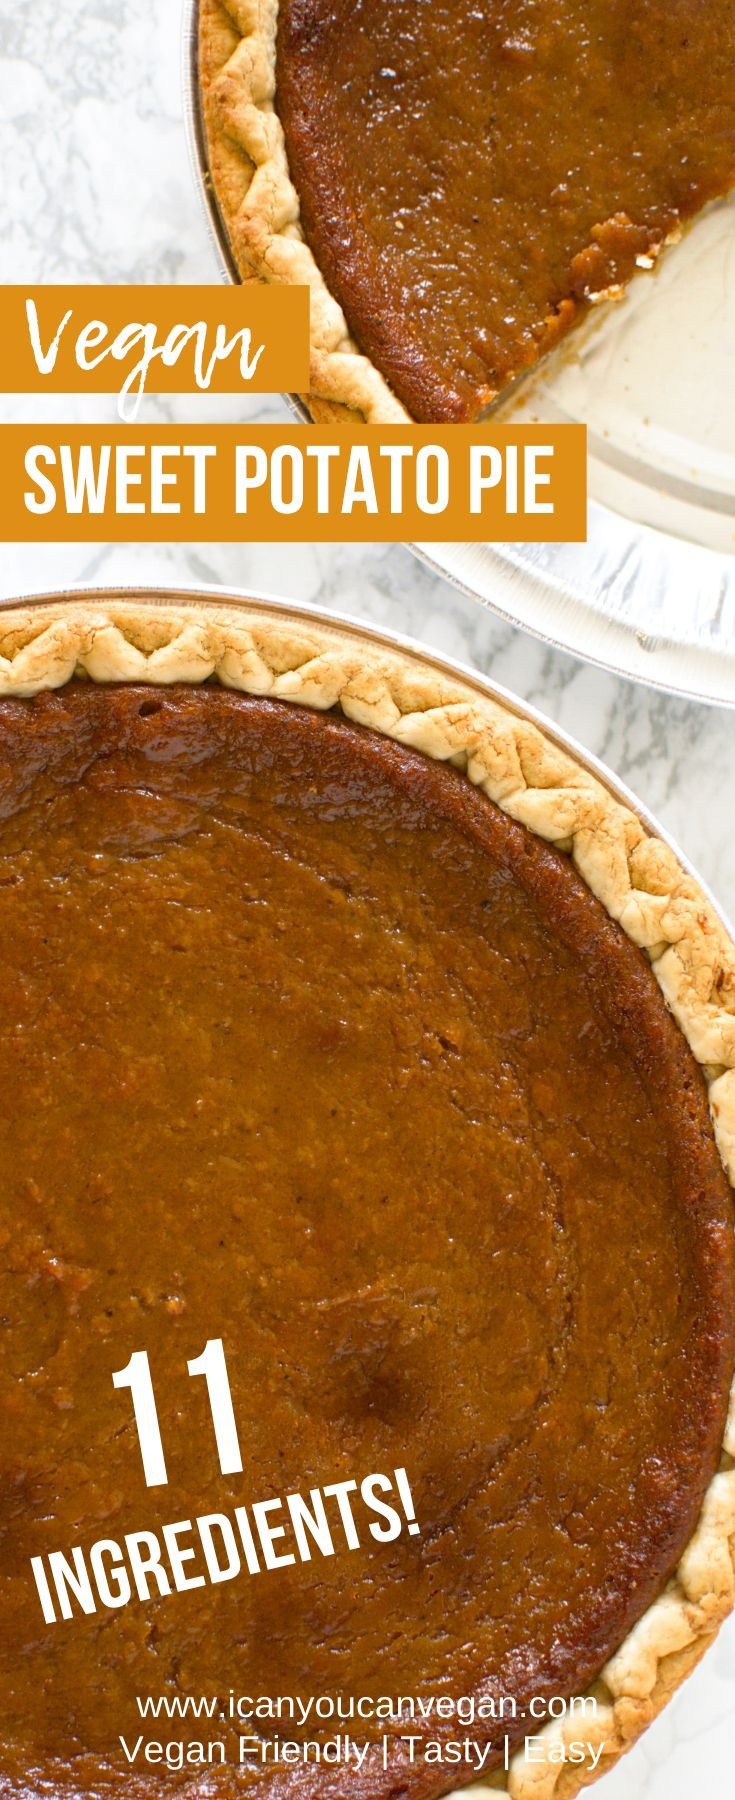 Easy Vegan Sweet Potato Pie I Can You Can Vegan Icanyoucanvegan Recipe In 2020 Vegan Sweet Potato Pie Vegan Sweet Potato Sweet Potato Pie